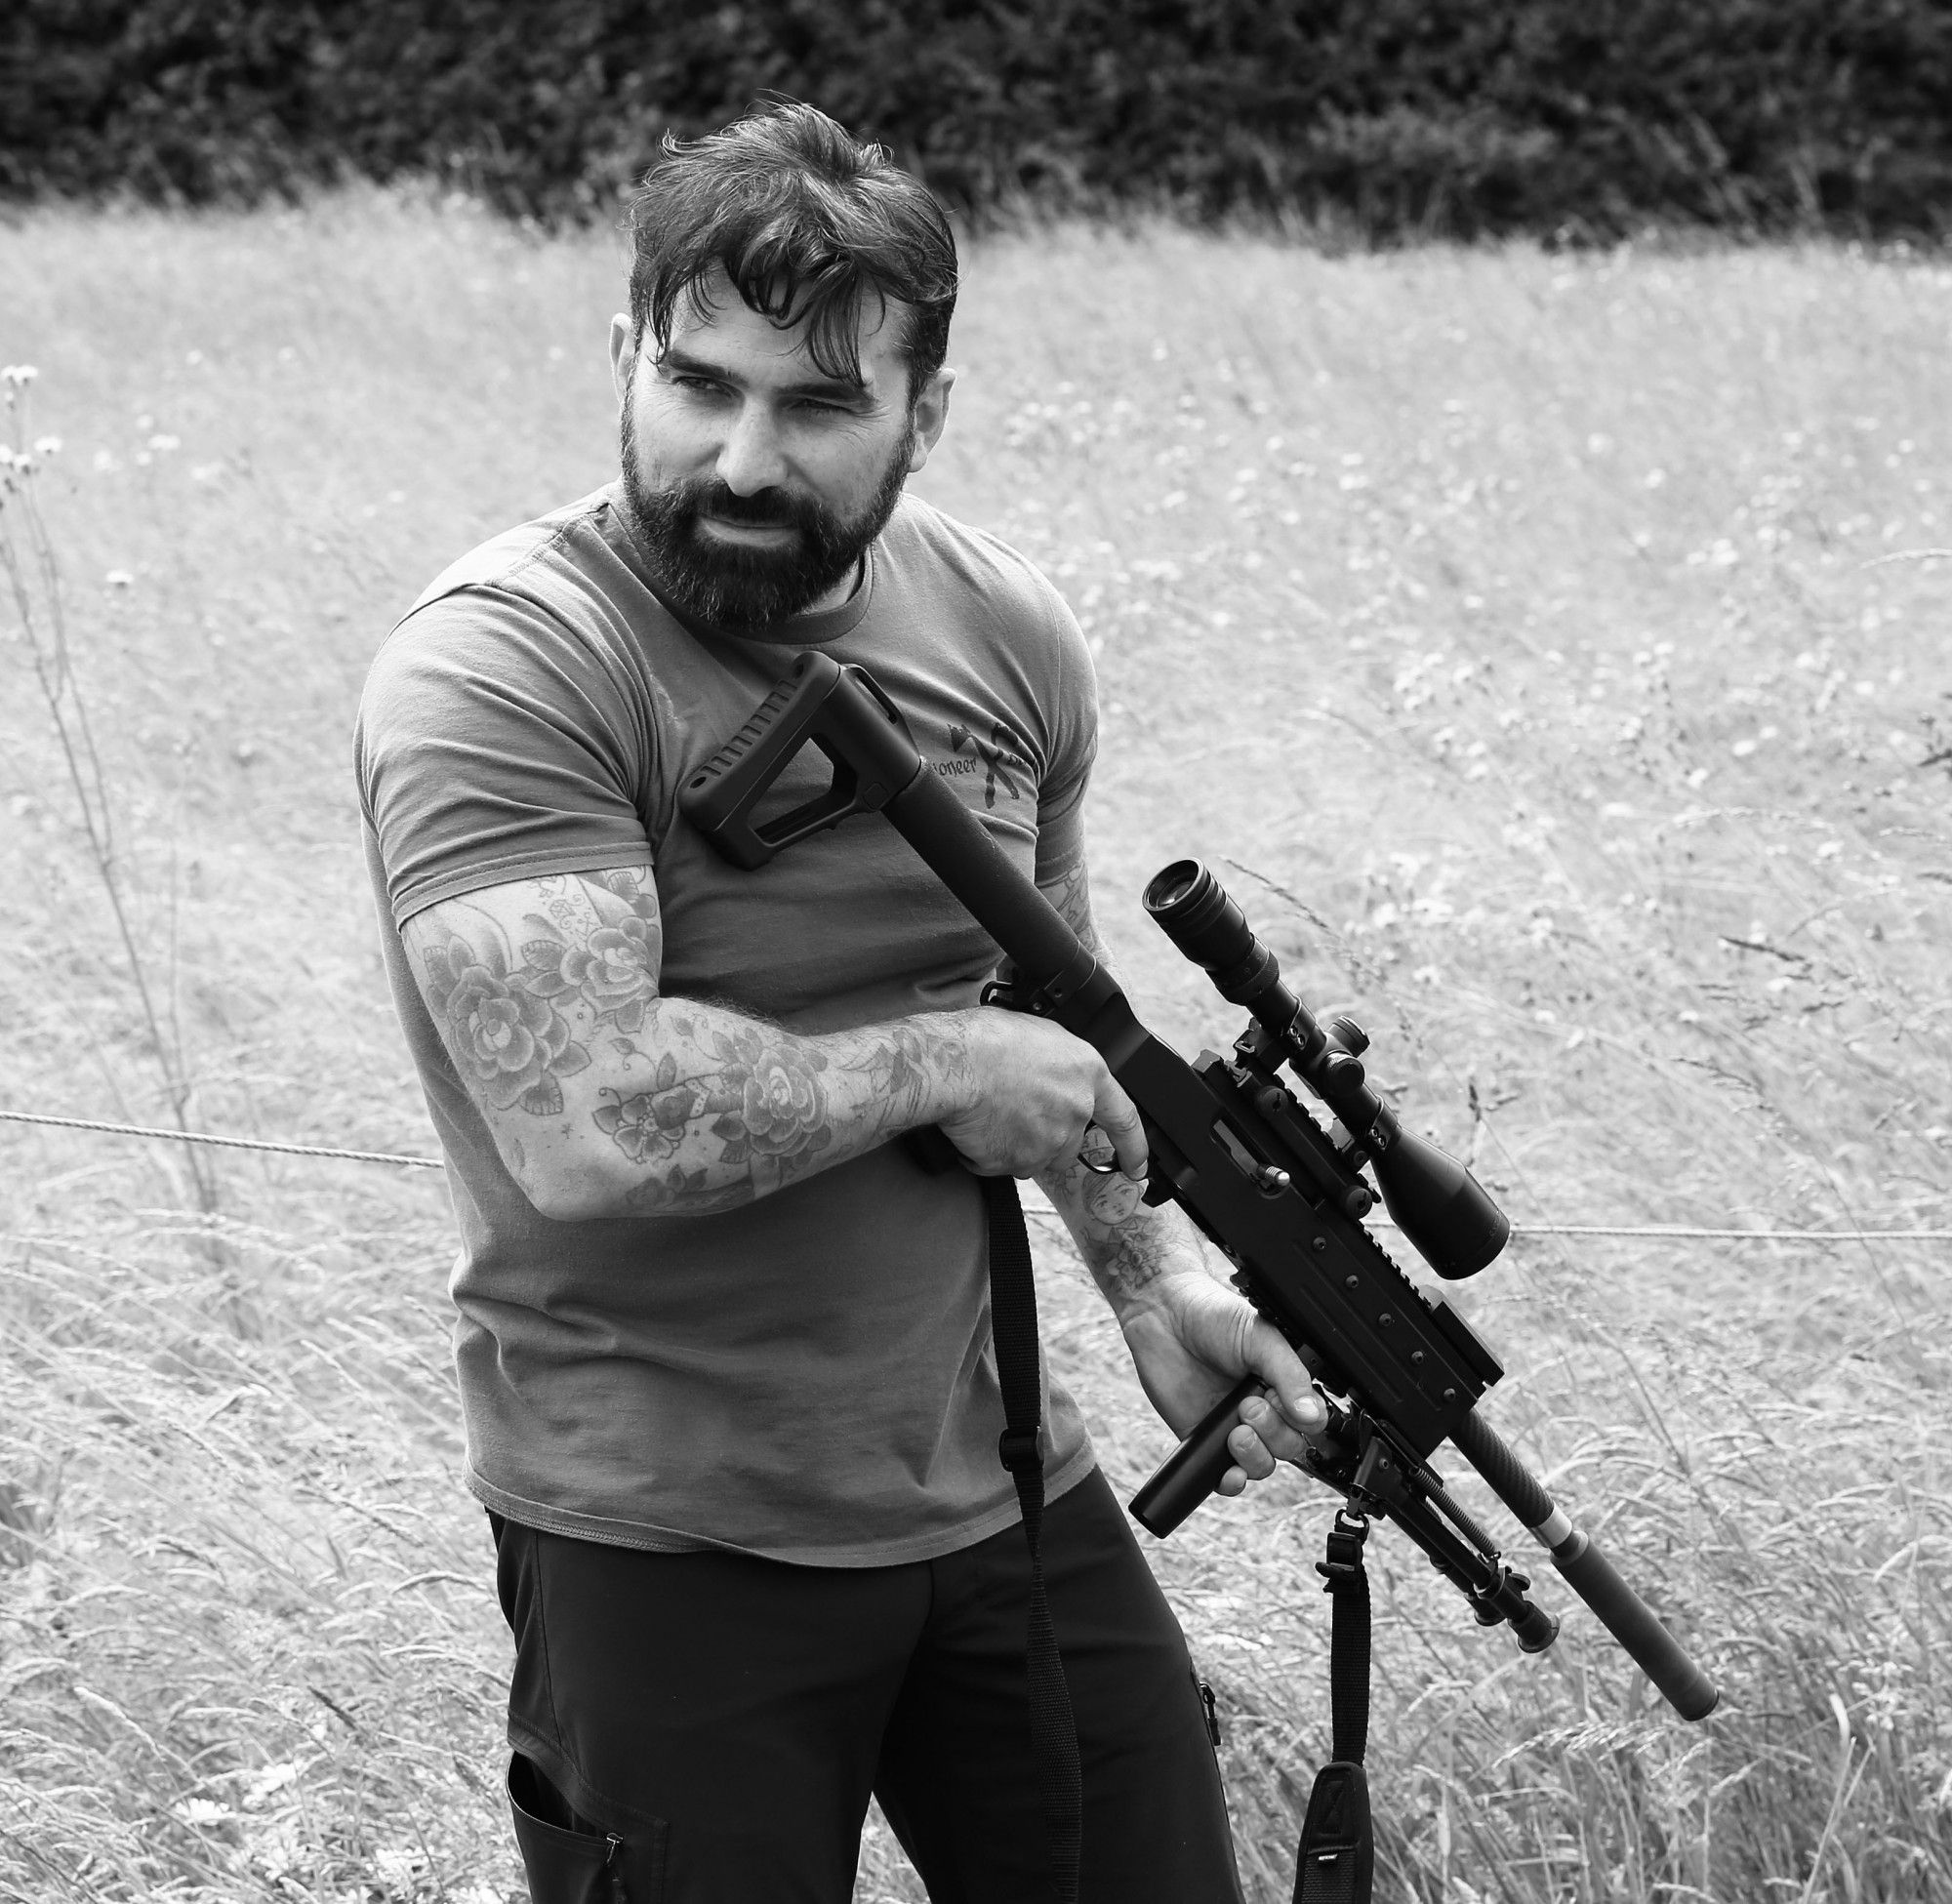 teaching rifle safety our elite sbs sas pinterest ant middleton gorgeous men and eye candy. Black Bedroom Furniture Sets. Home Design Ideas